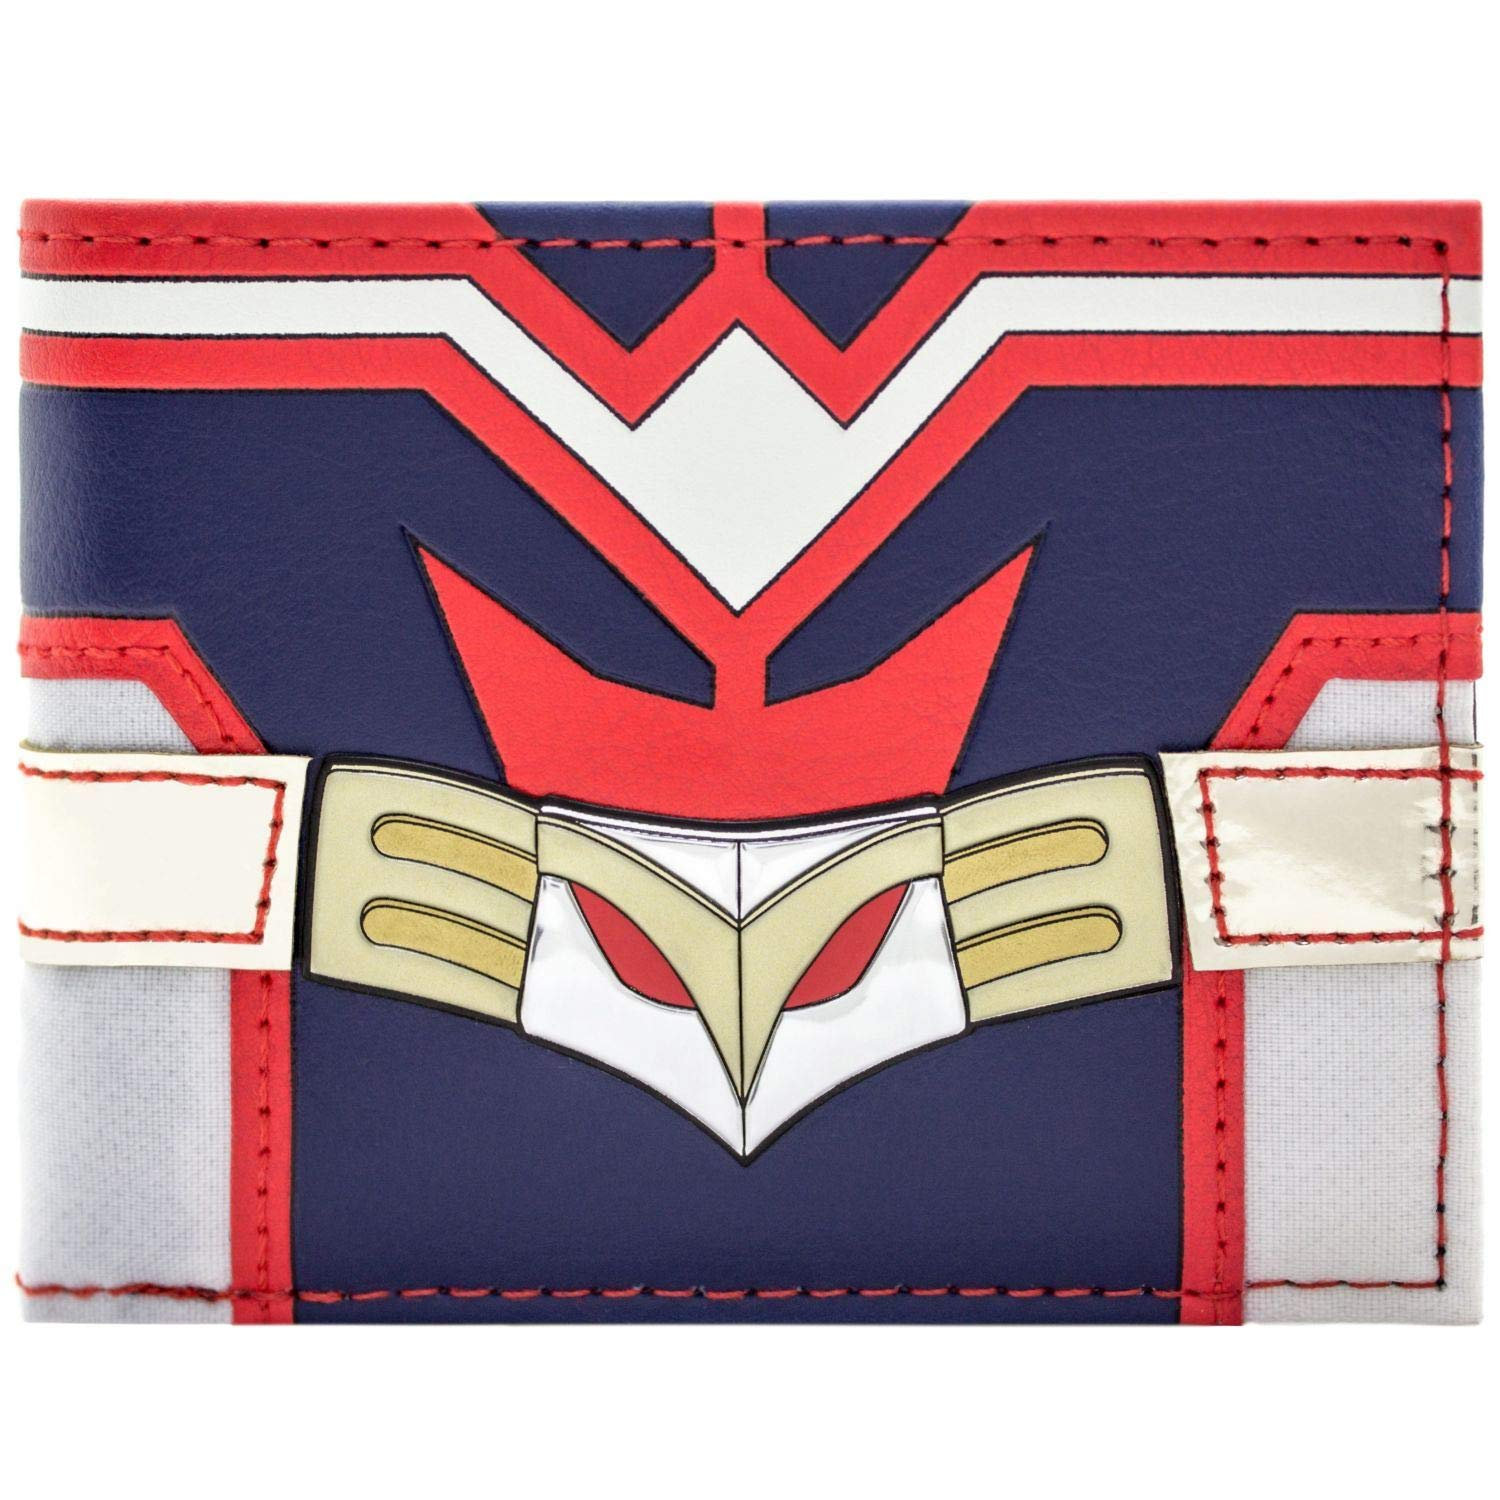 Cartera de My Hero Academia All Might Traje Rojo y Azul Negro 31440